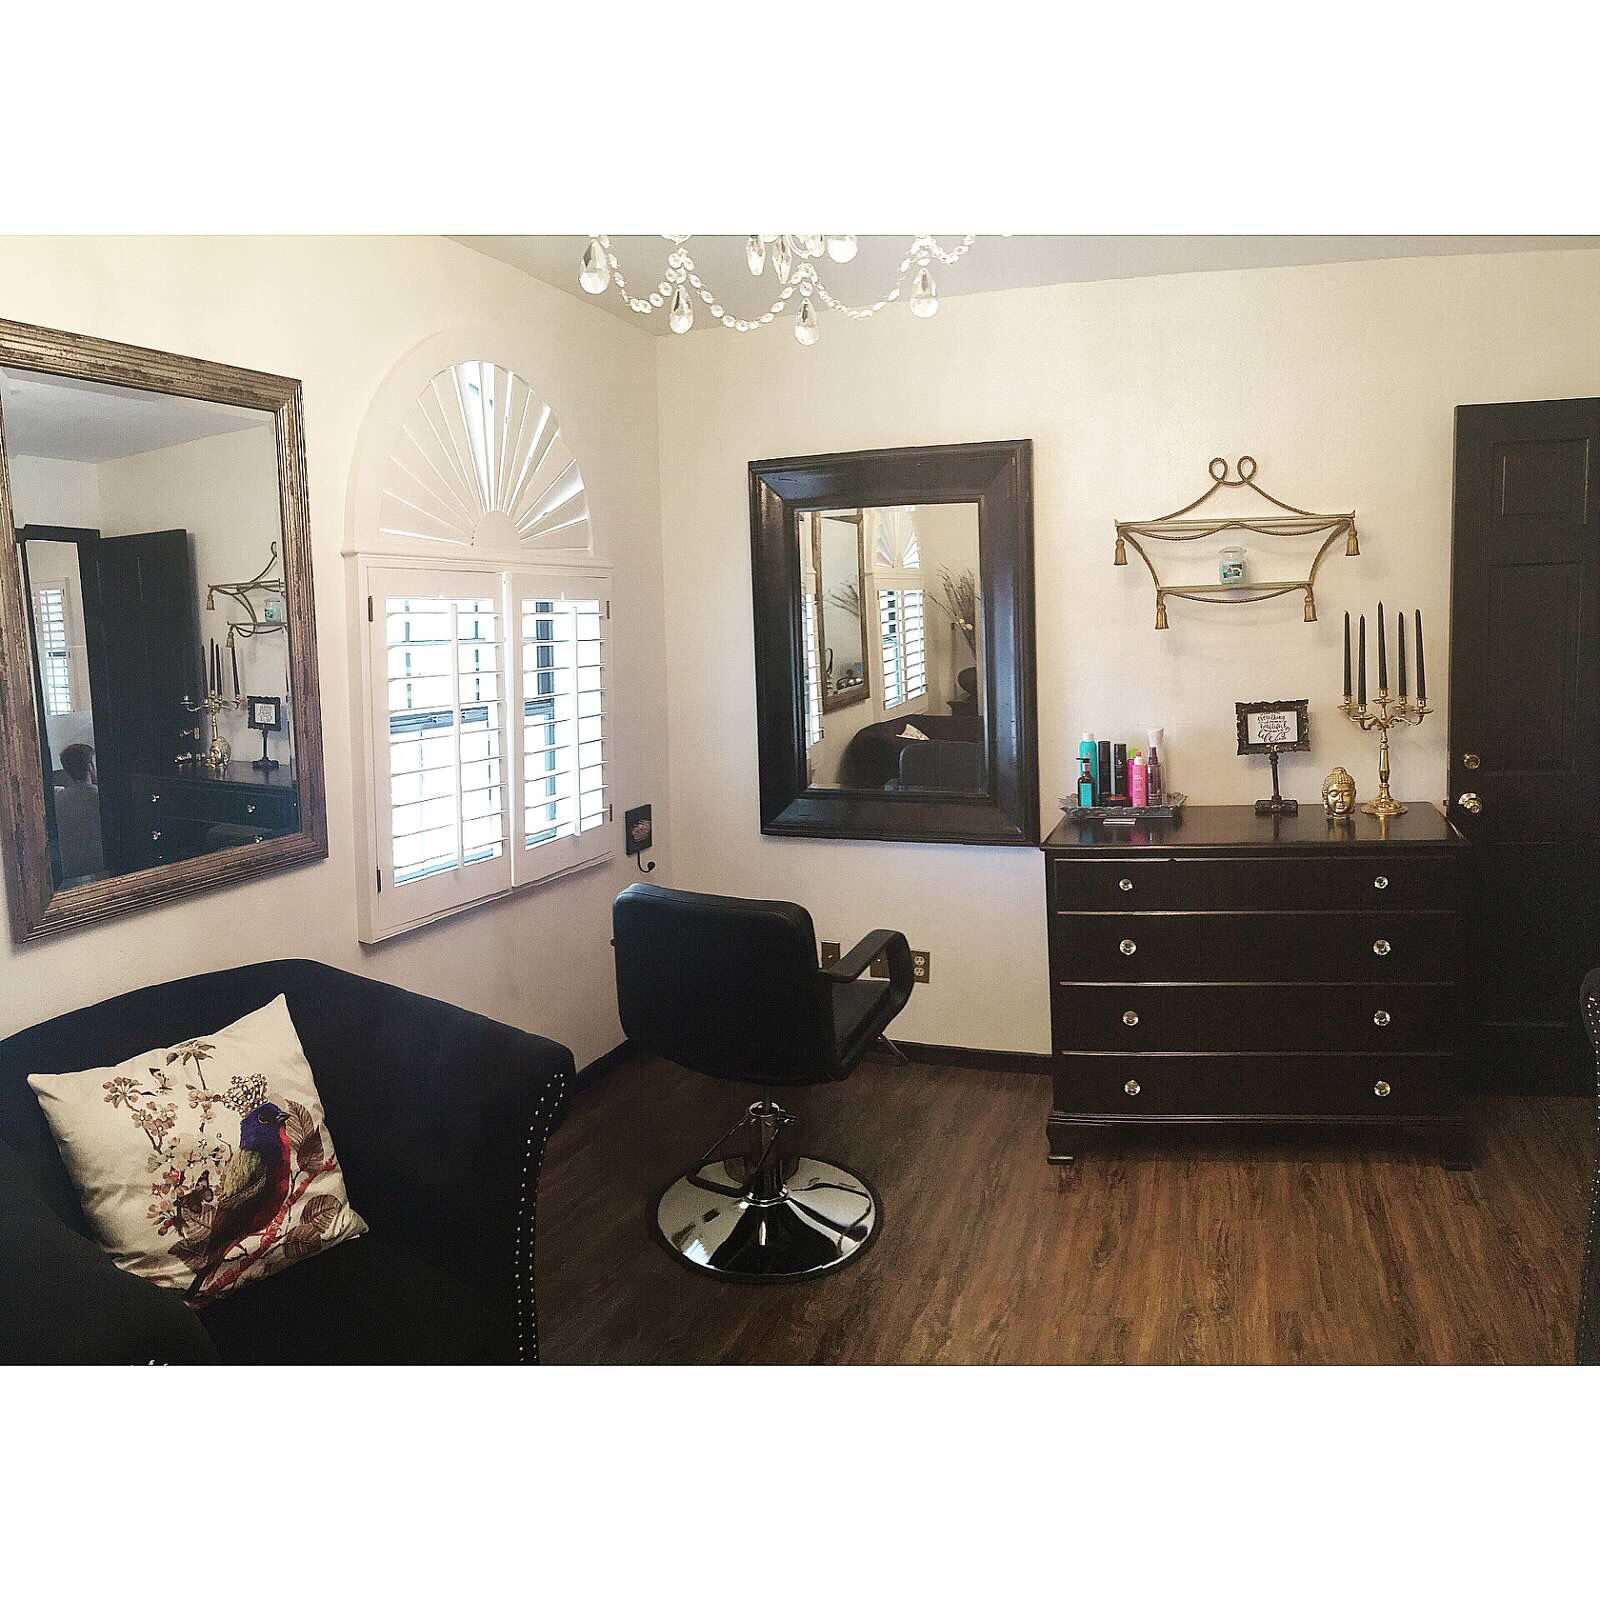 My station at Pretty Salon What a gorgeous place to relax have a